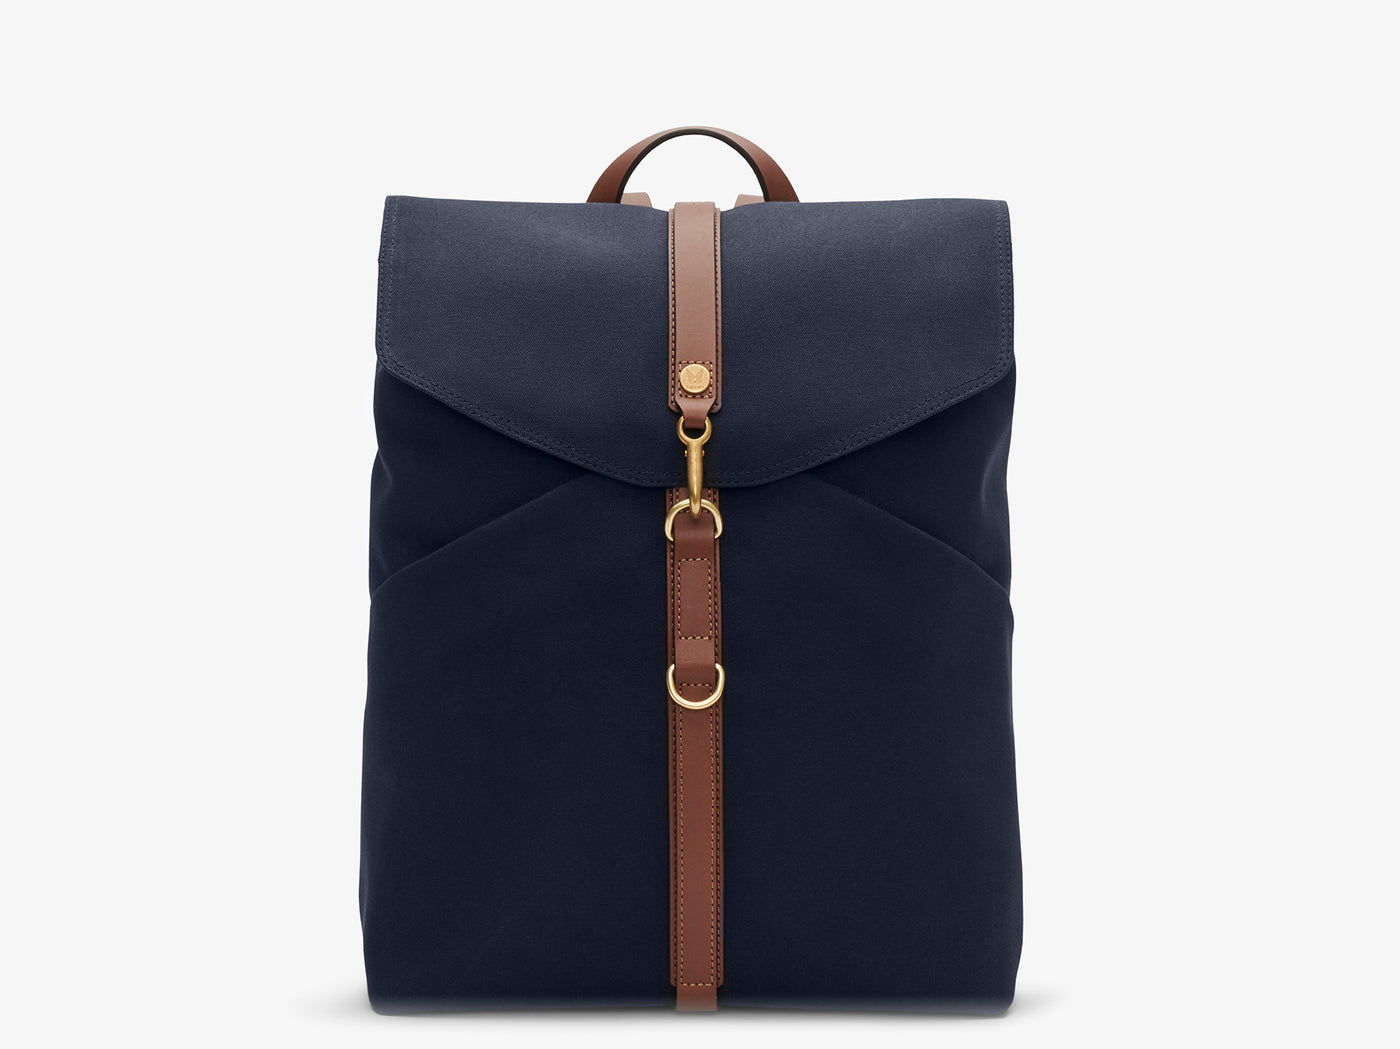 M/S Rucksack – Midnight blue/Cuoio